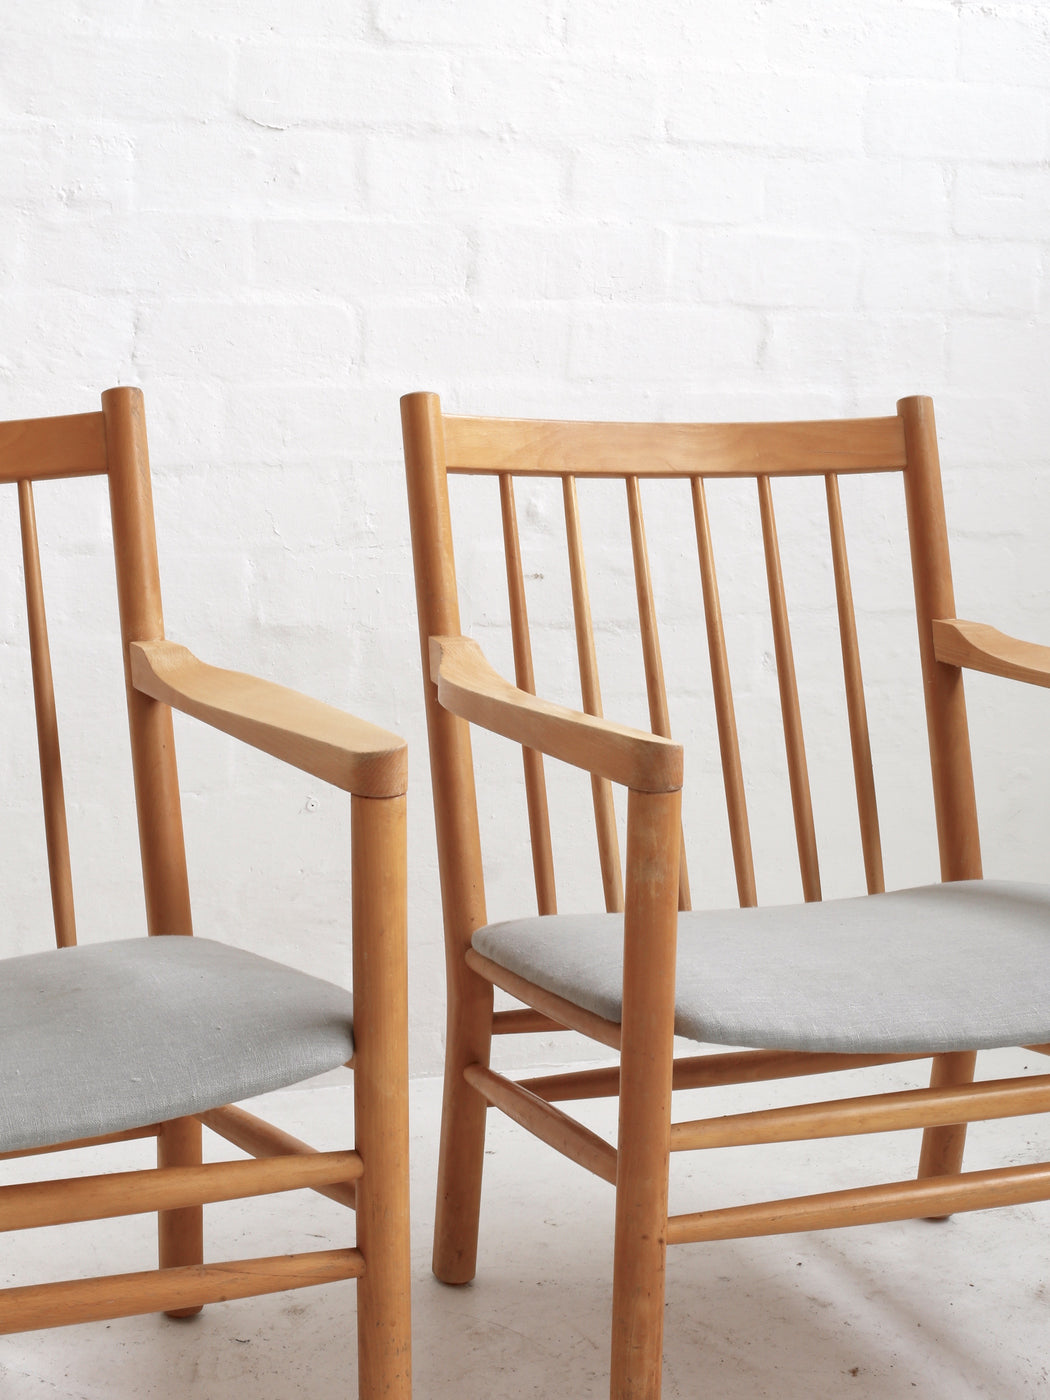 Erik Ole Jørgensen 'Model J147' Chairs